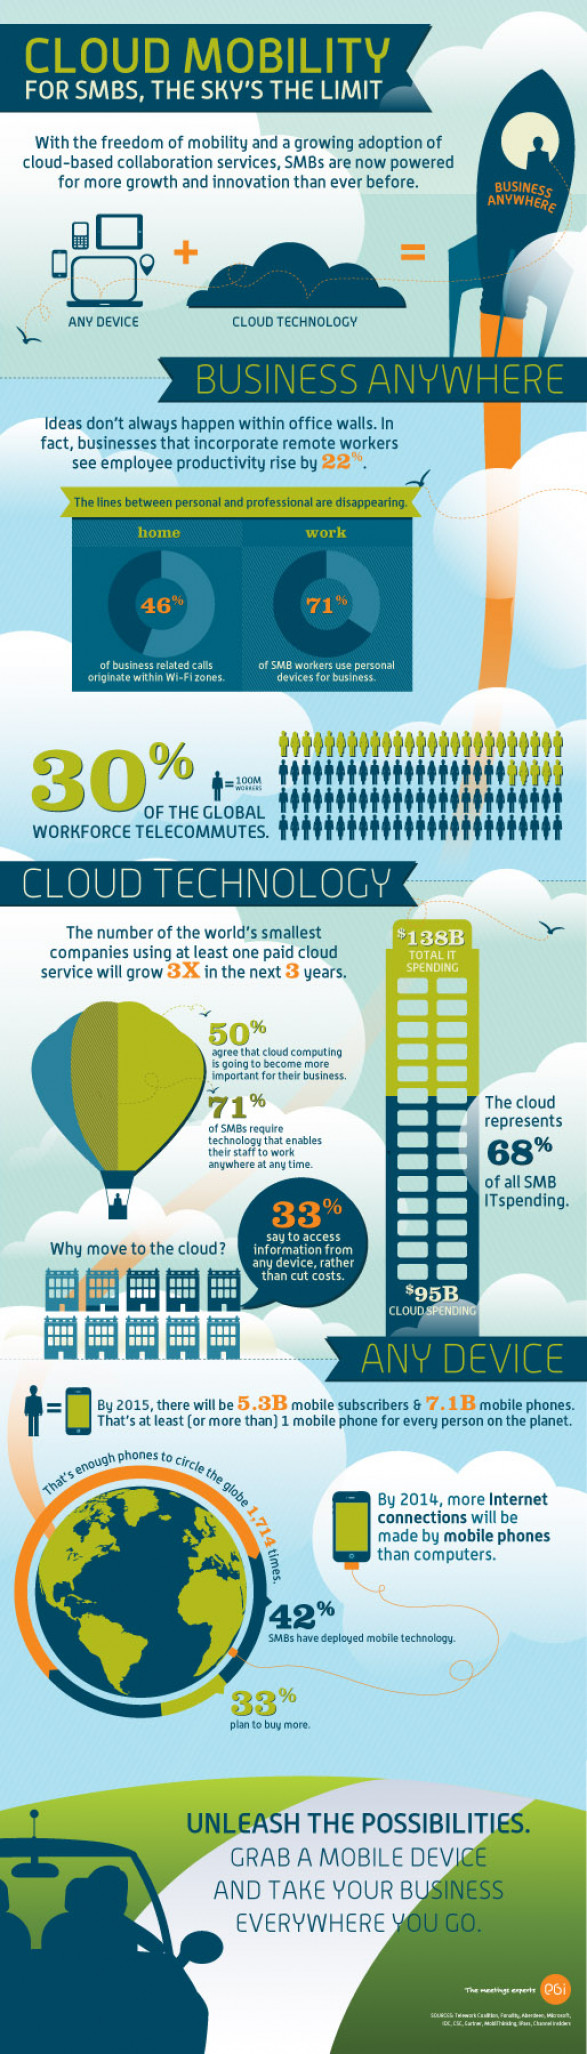 Cloud Mobility = Power for SMBs